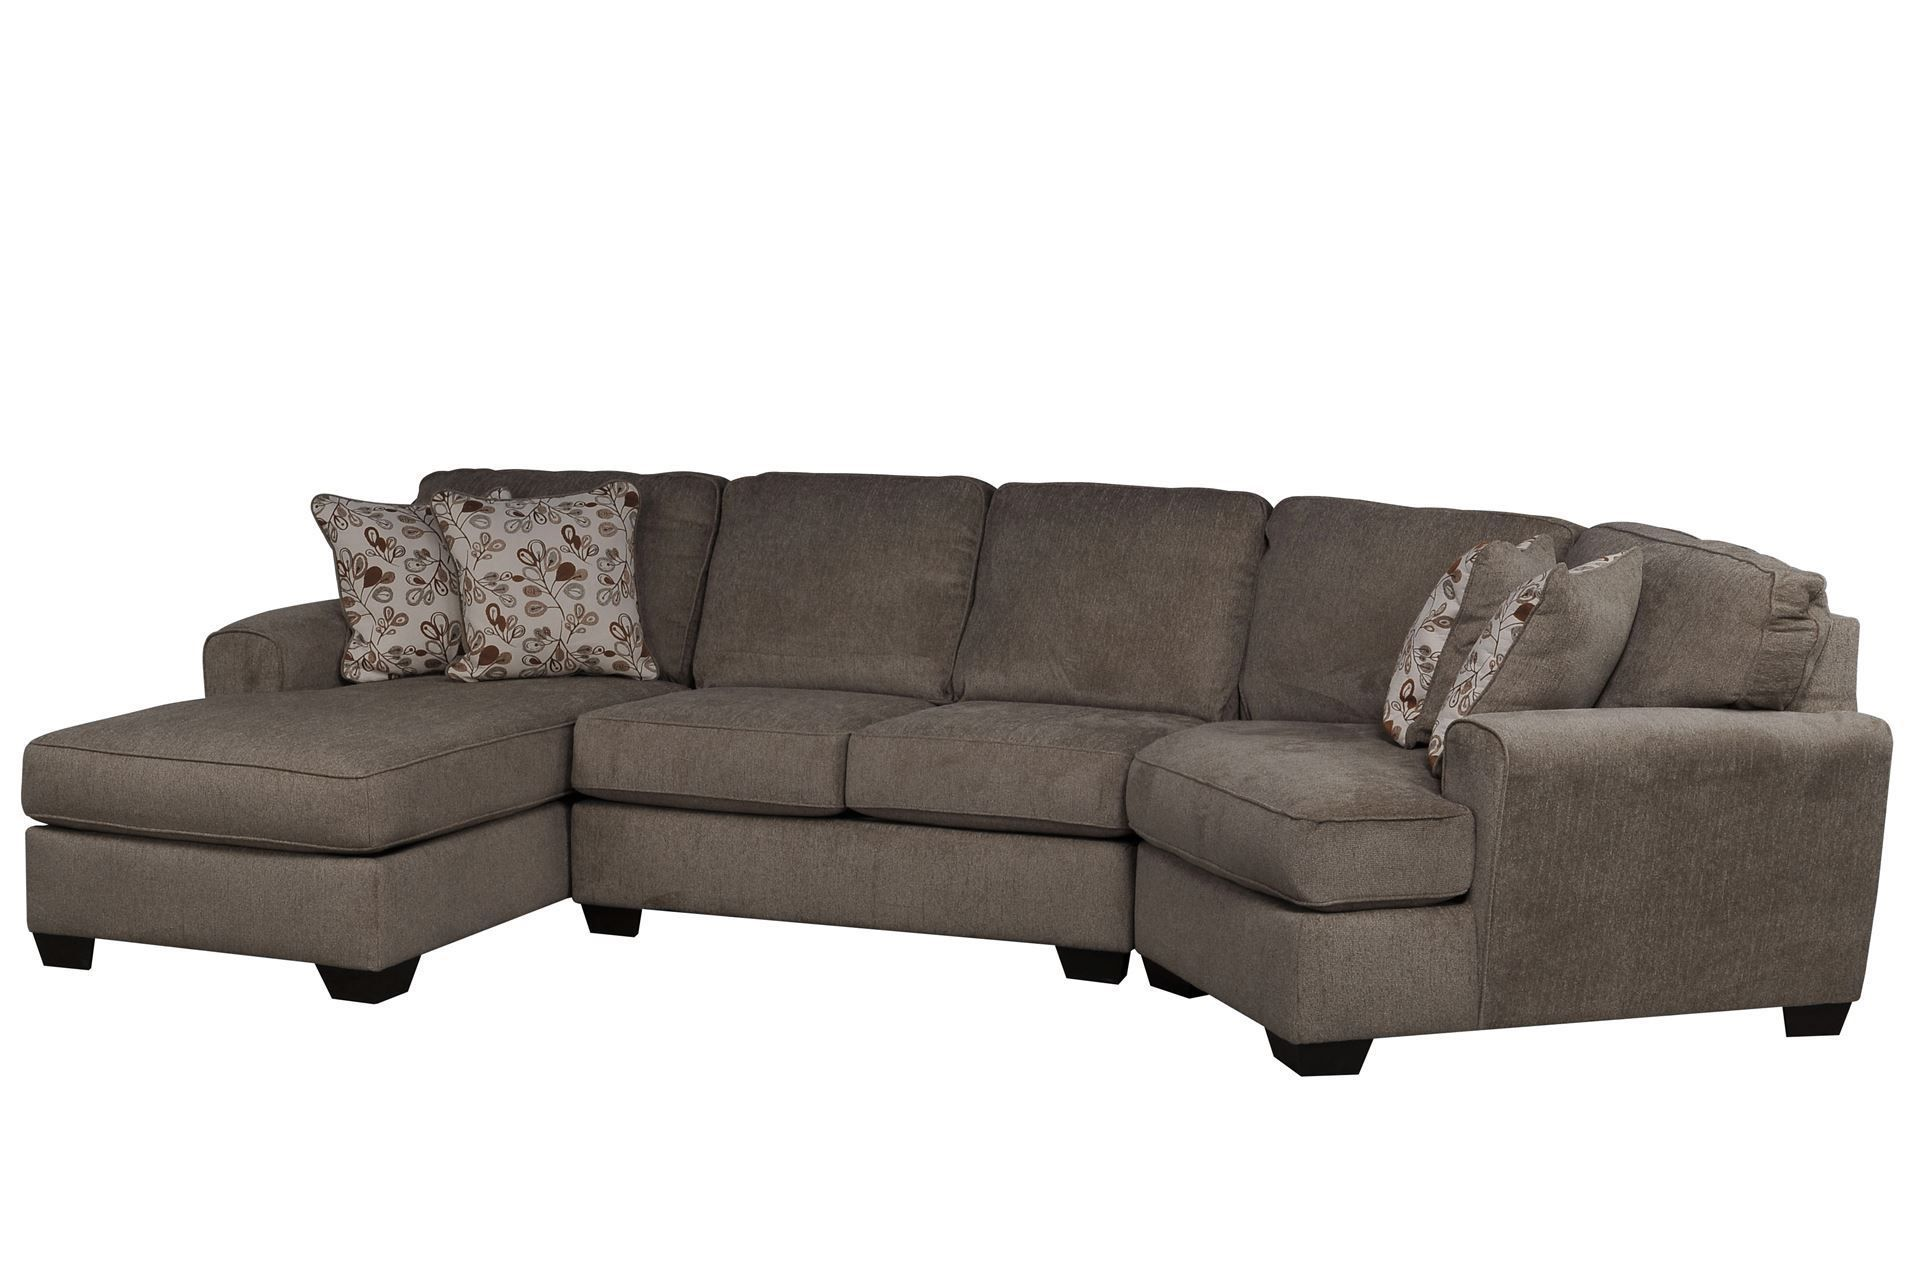 Patola Park 3 Piece Cuddler Sectional W Laf Cornr Chaise